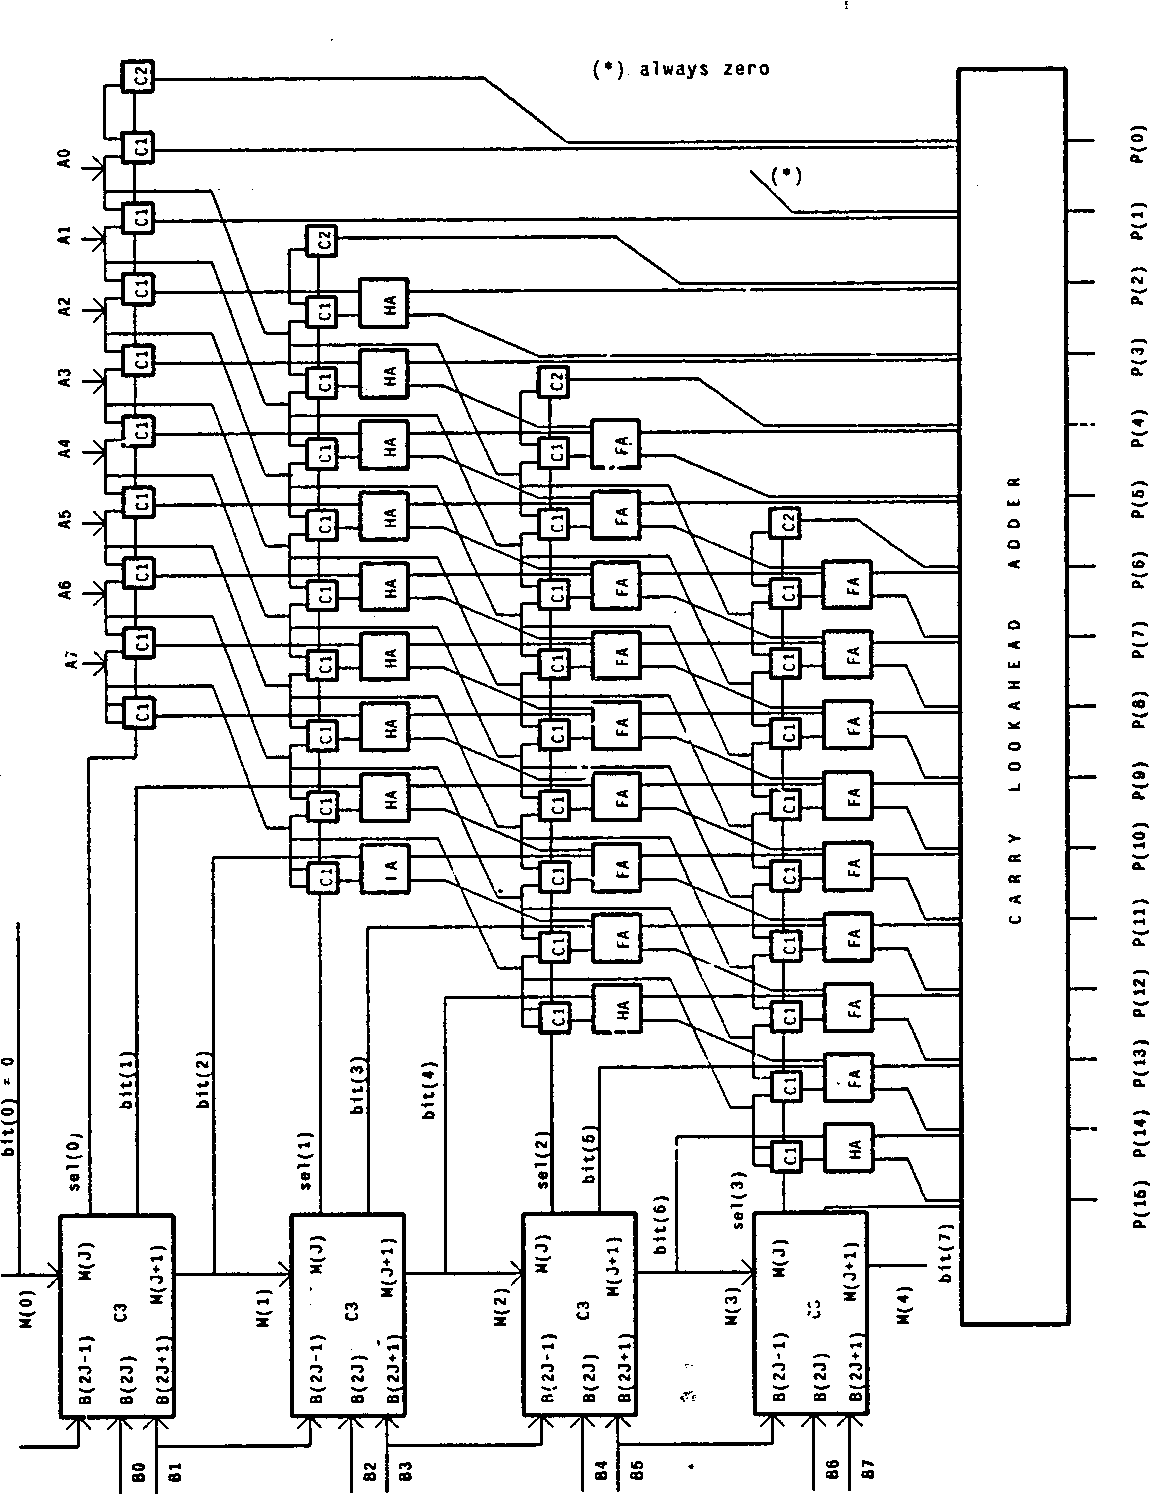 Figure 2 6 From The Design Of An Lsi Booth Multiplier Nmos Vs 8 Bit Circuit Diagram A More Compact Scheme For